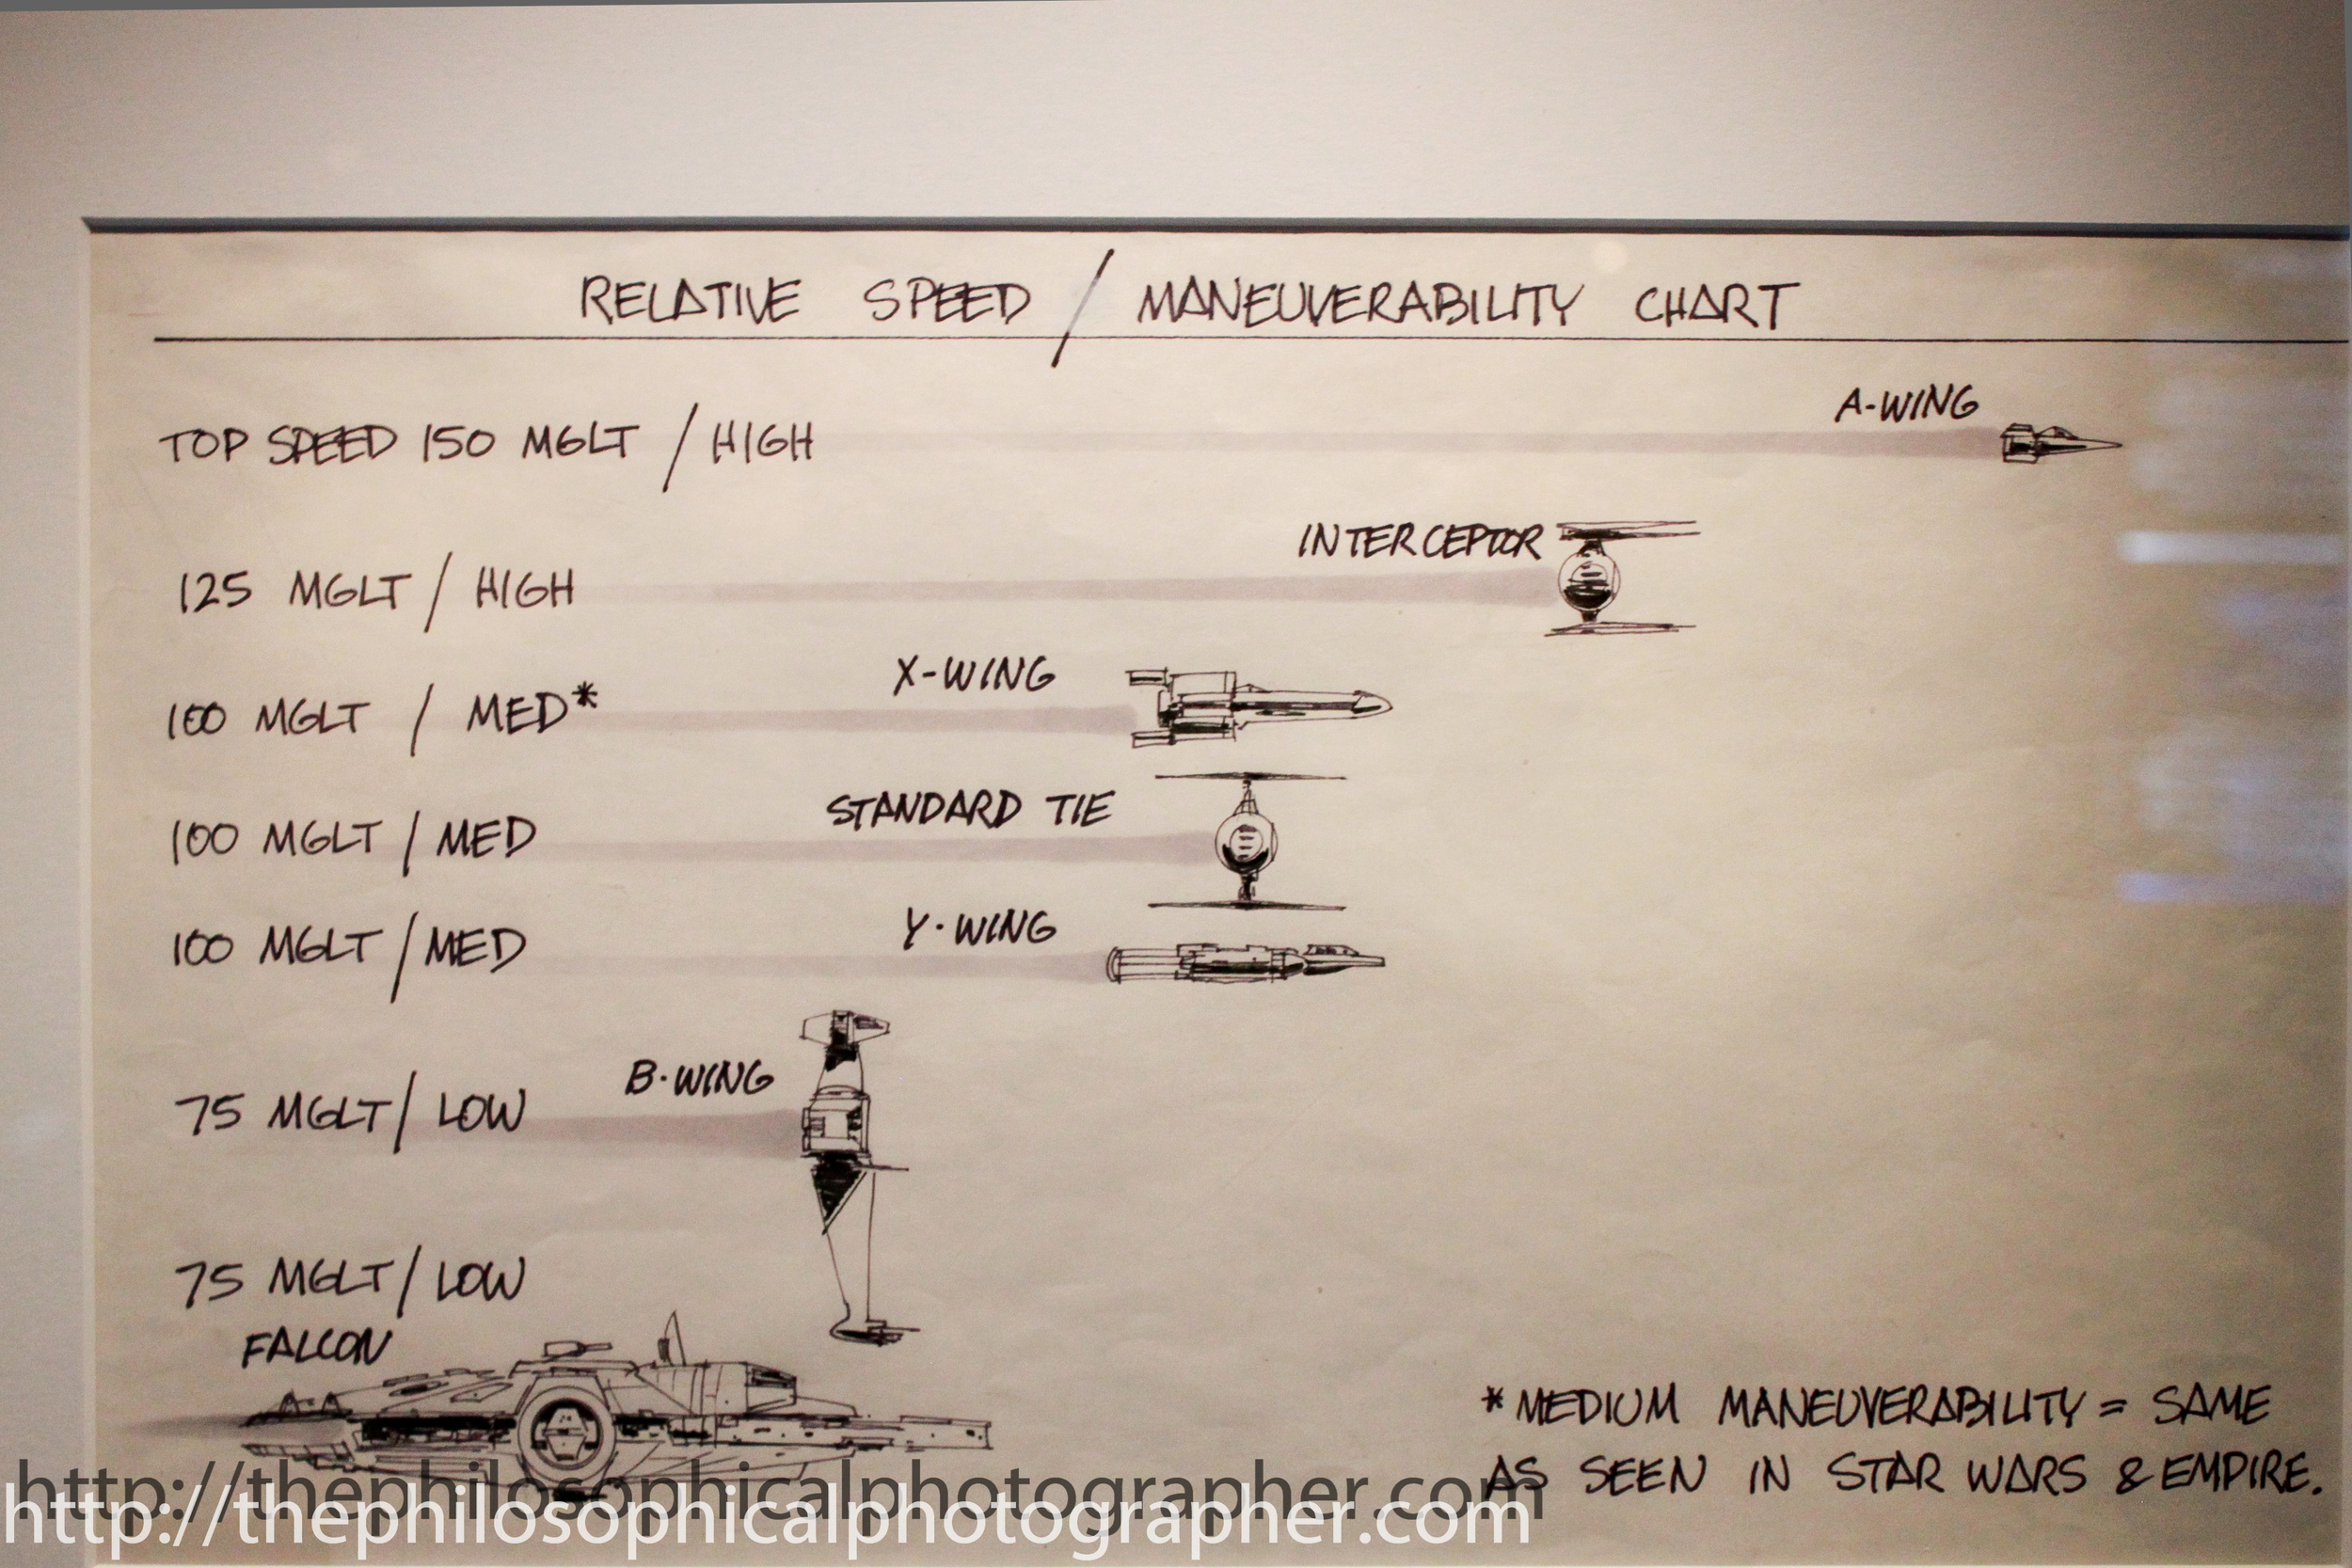 Relative Speed/Maneuverability Chart